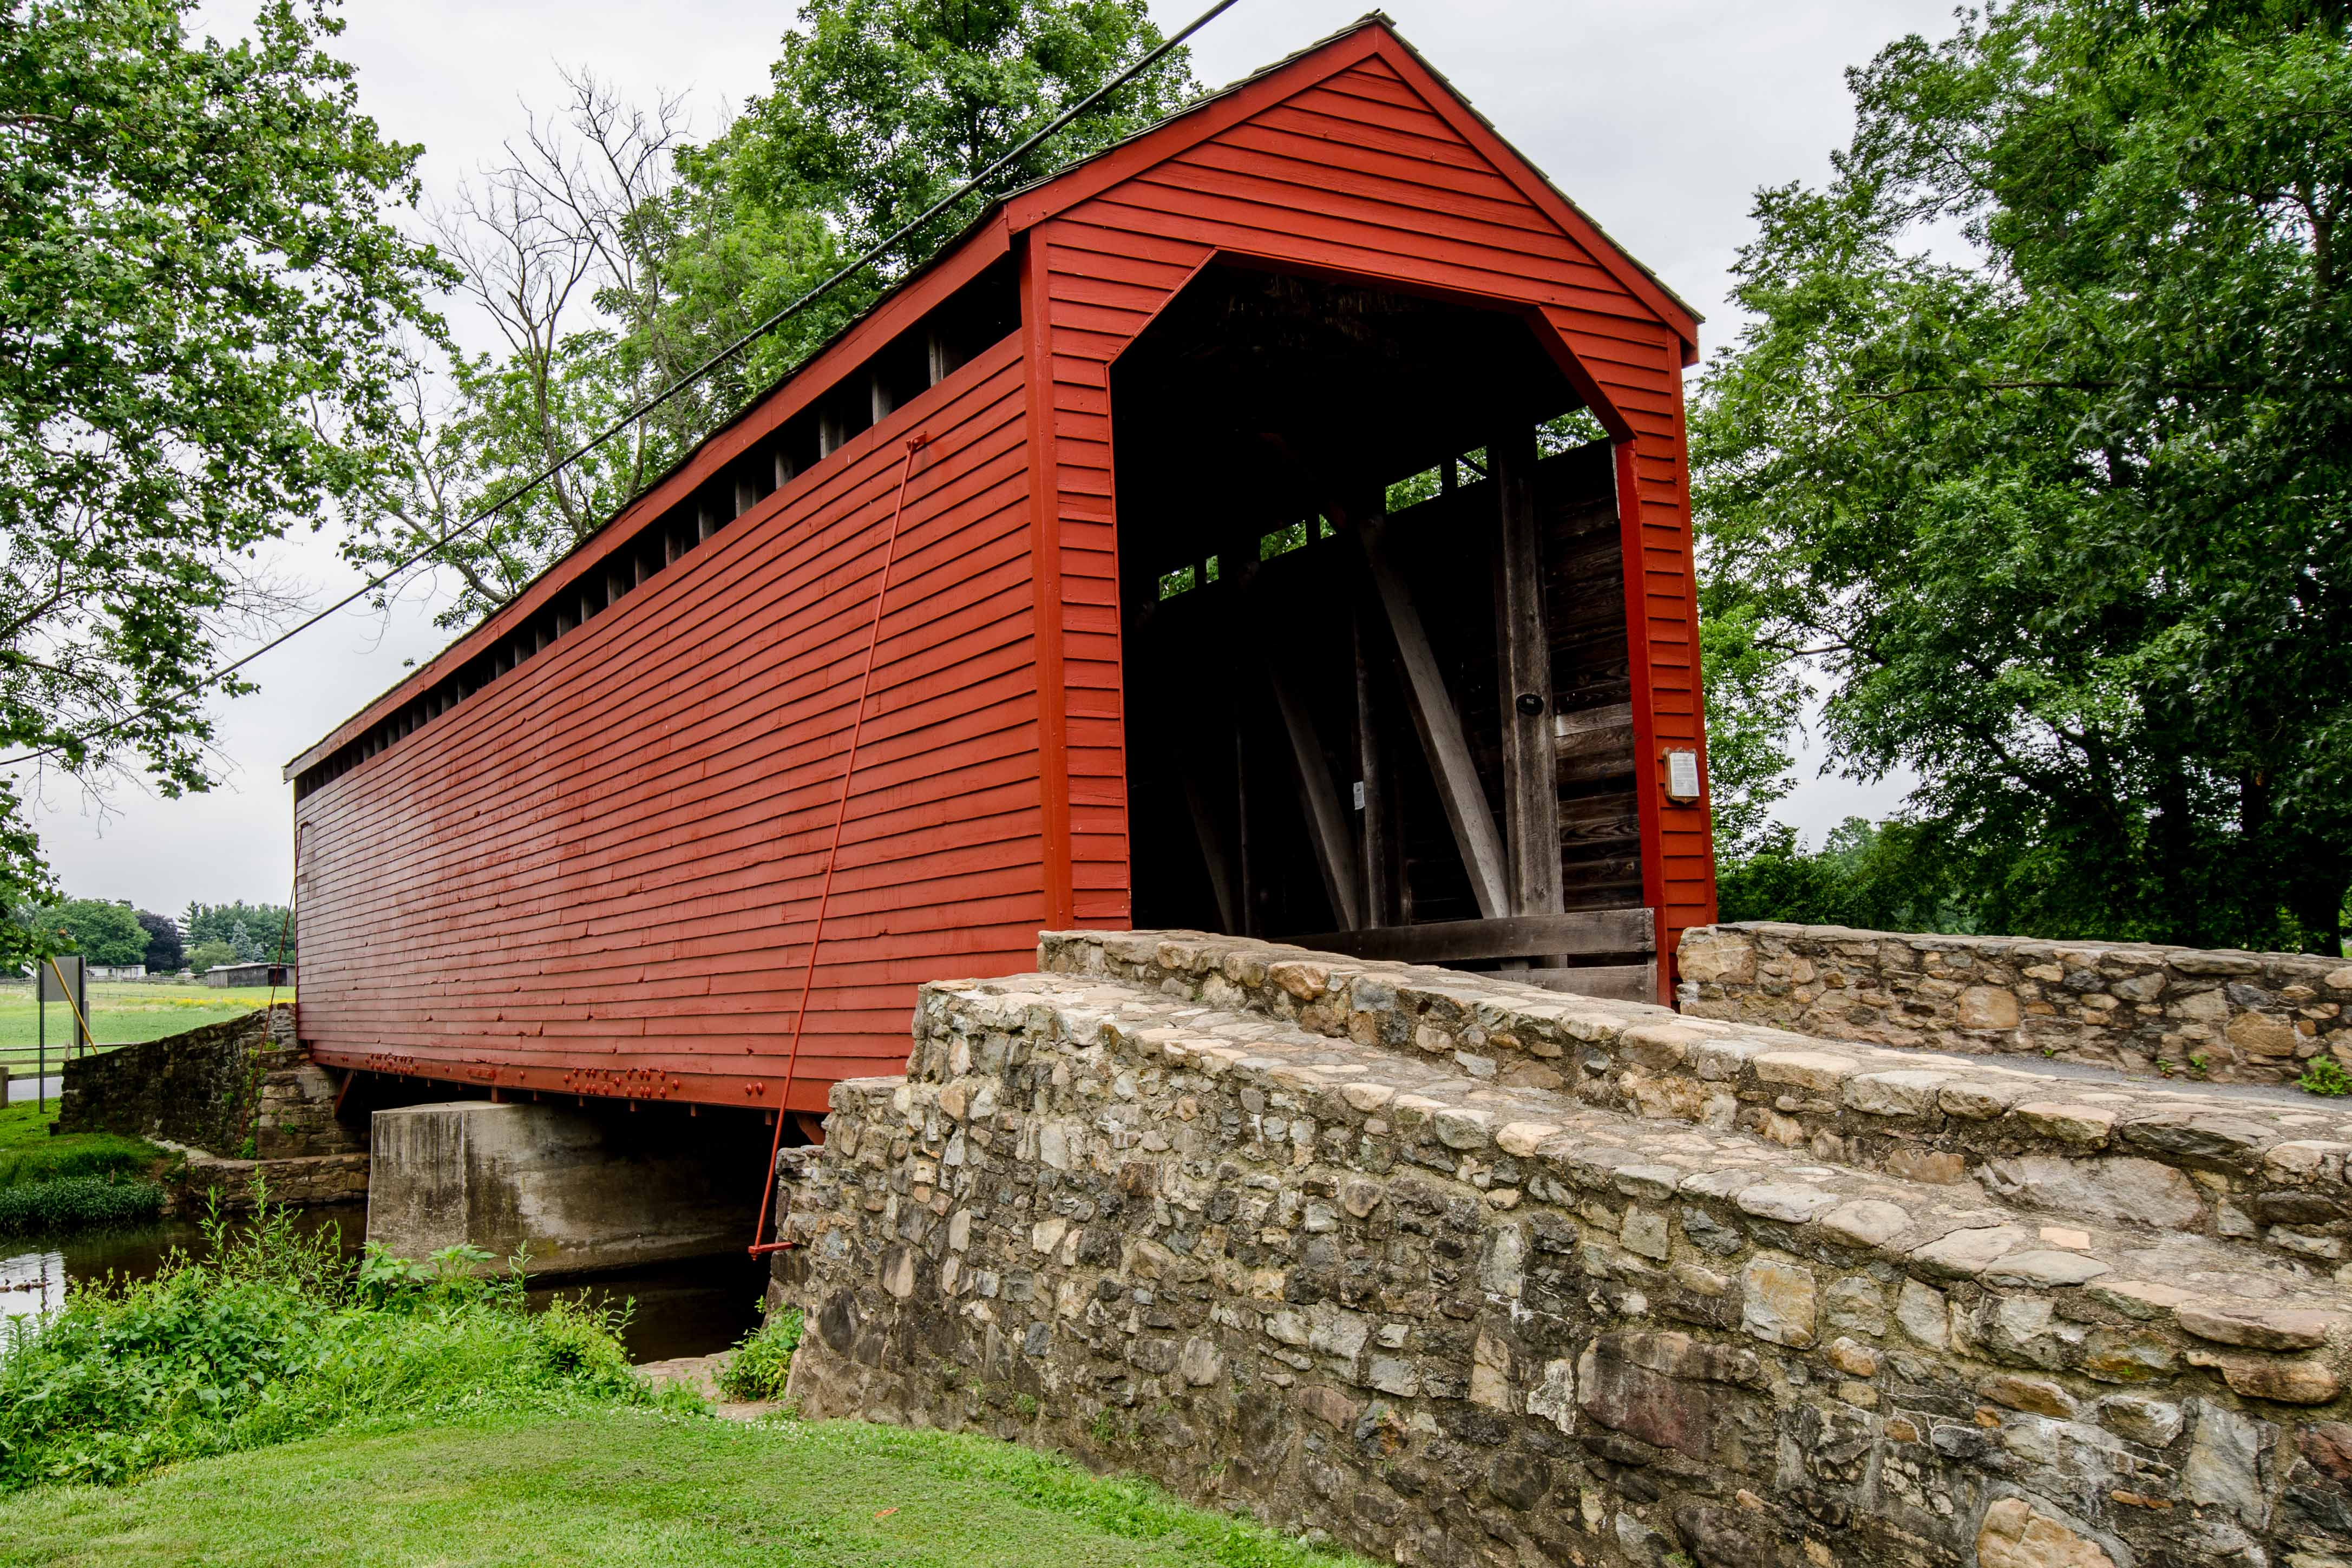 Loys Station Covered Bridge, painted red